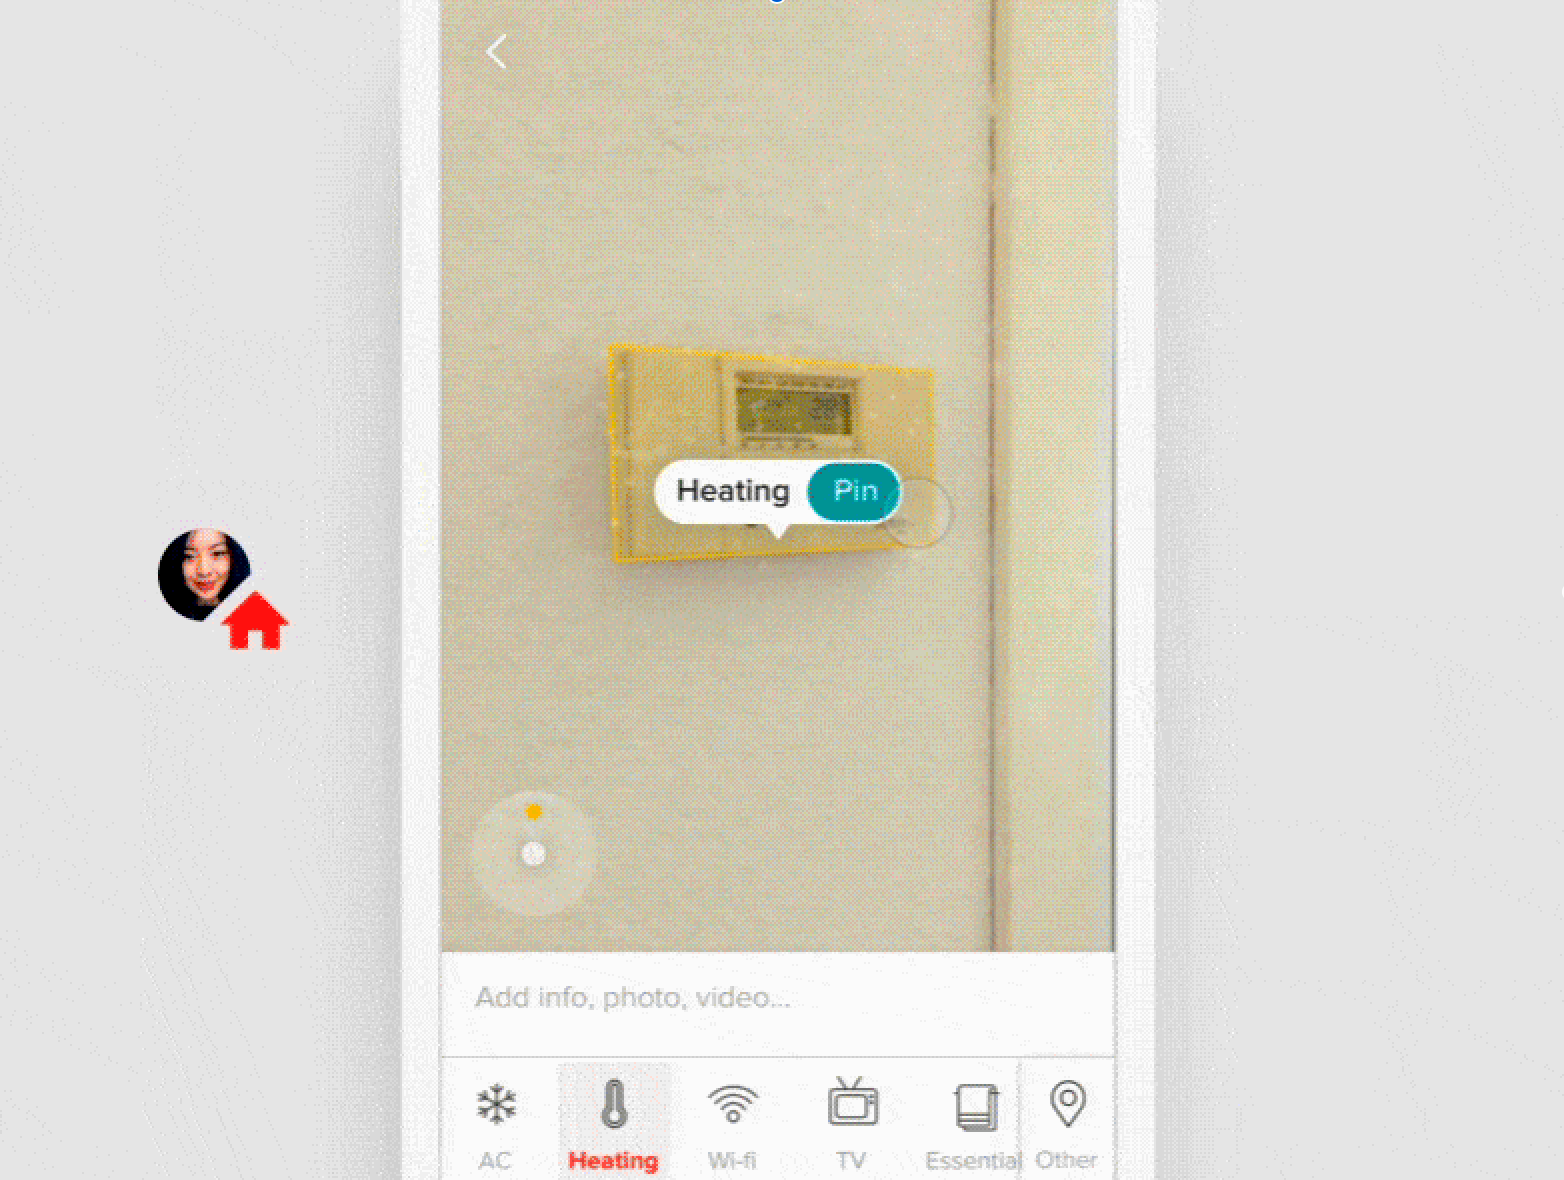 Building an AR house manual for your Airbnb with ARKit + Placenote SDK